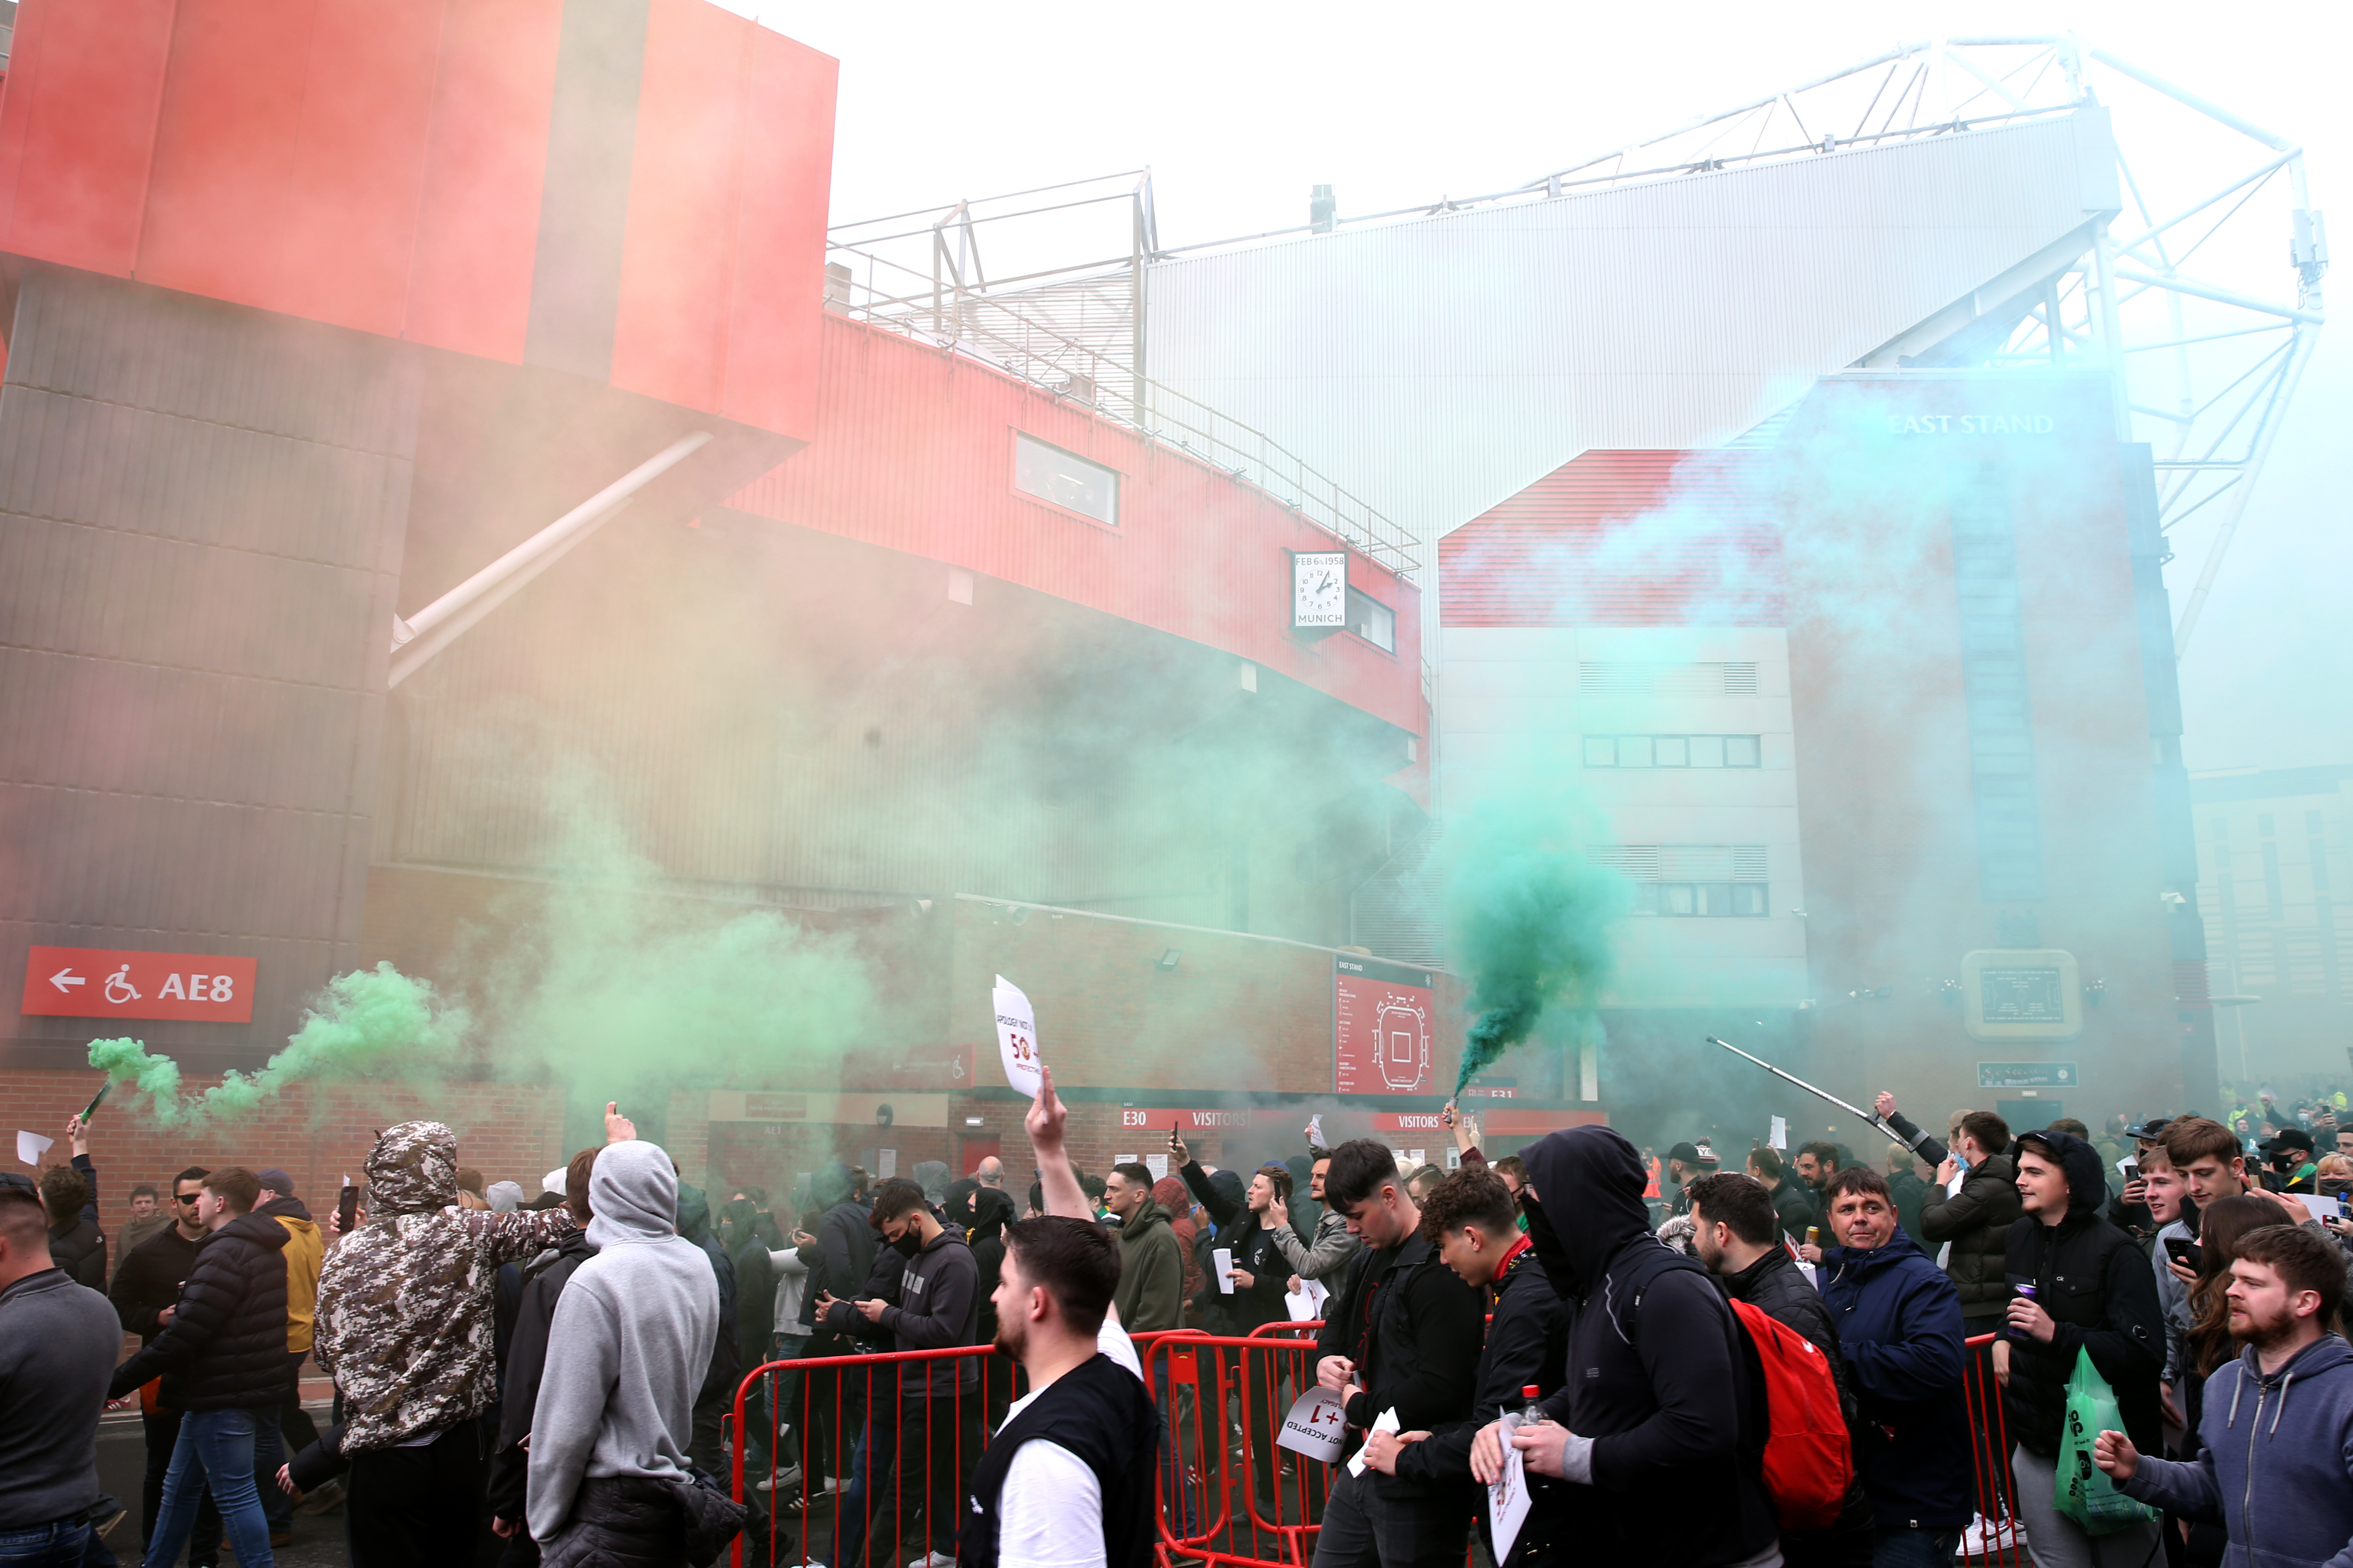 <p>Fans make their way into the ground as they protest against the Glazer family, the owners of Manchester United, before their Premier League match against Liverpool at Old Trafford, Manchester. Issue date: Sunday May 2, 2021.</p>